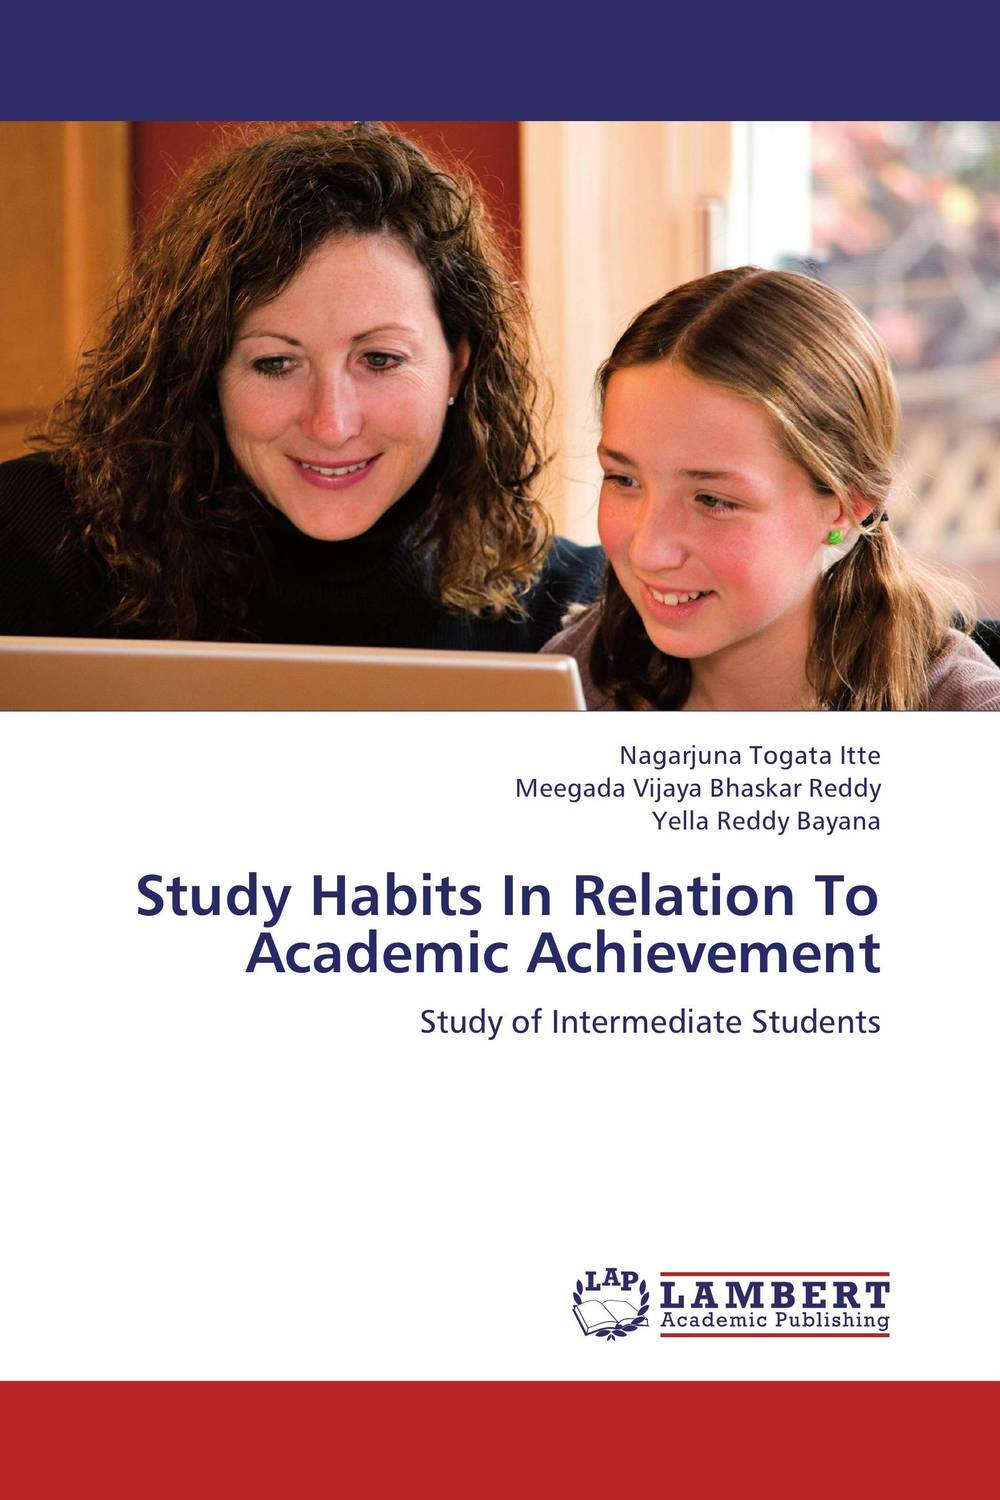 Study Habits In Relation To Academic Achievement